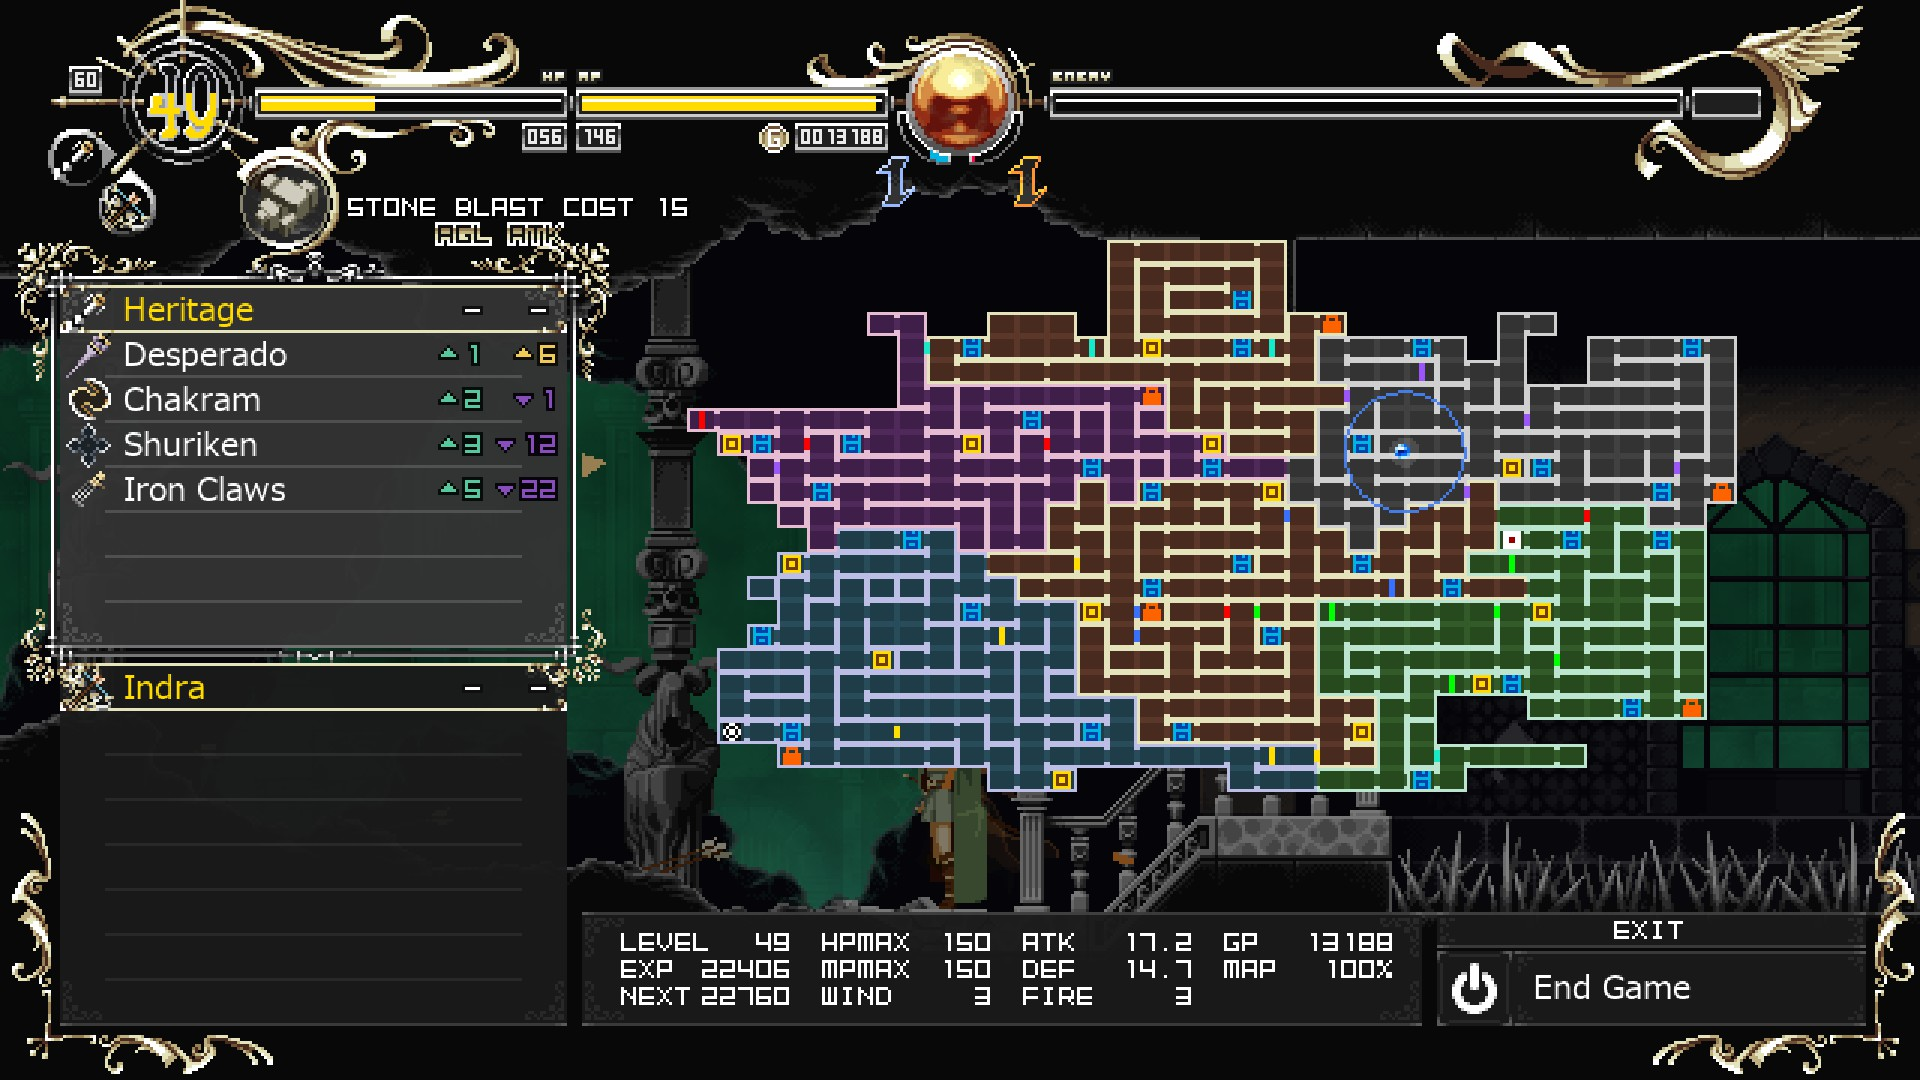 Record of Lodoss War-Deedlit in Wonder Labyrinth- - Achievements Guide & Monster Locations Tips - #56 - Giant Rat - E69C239